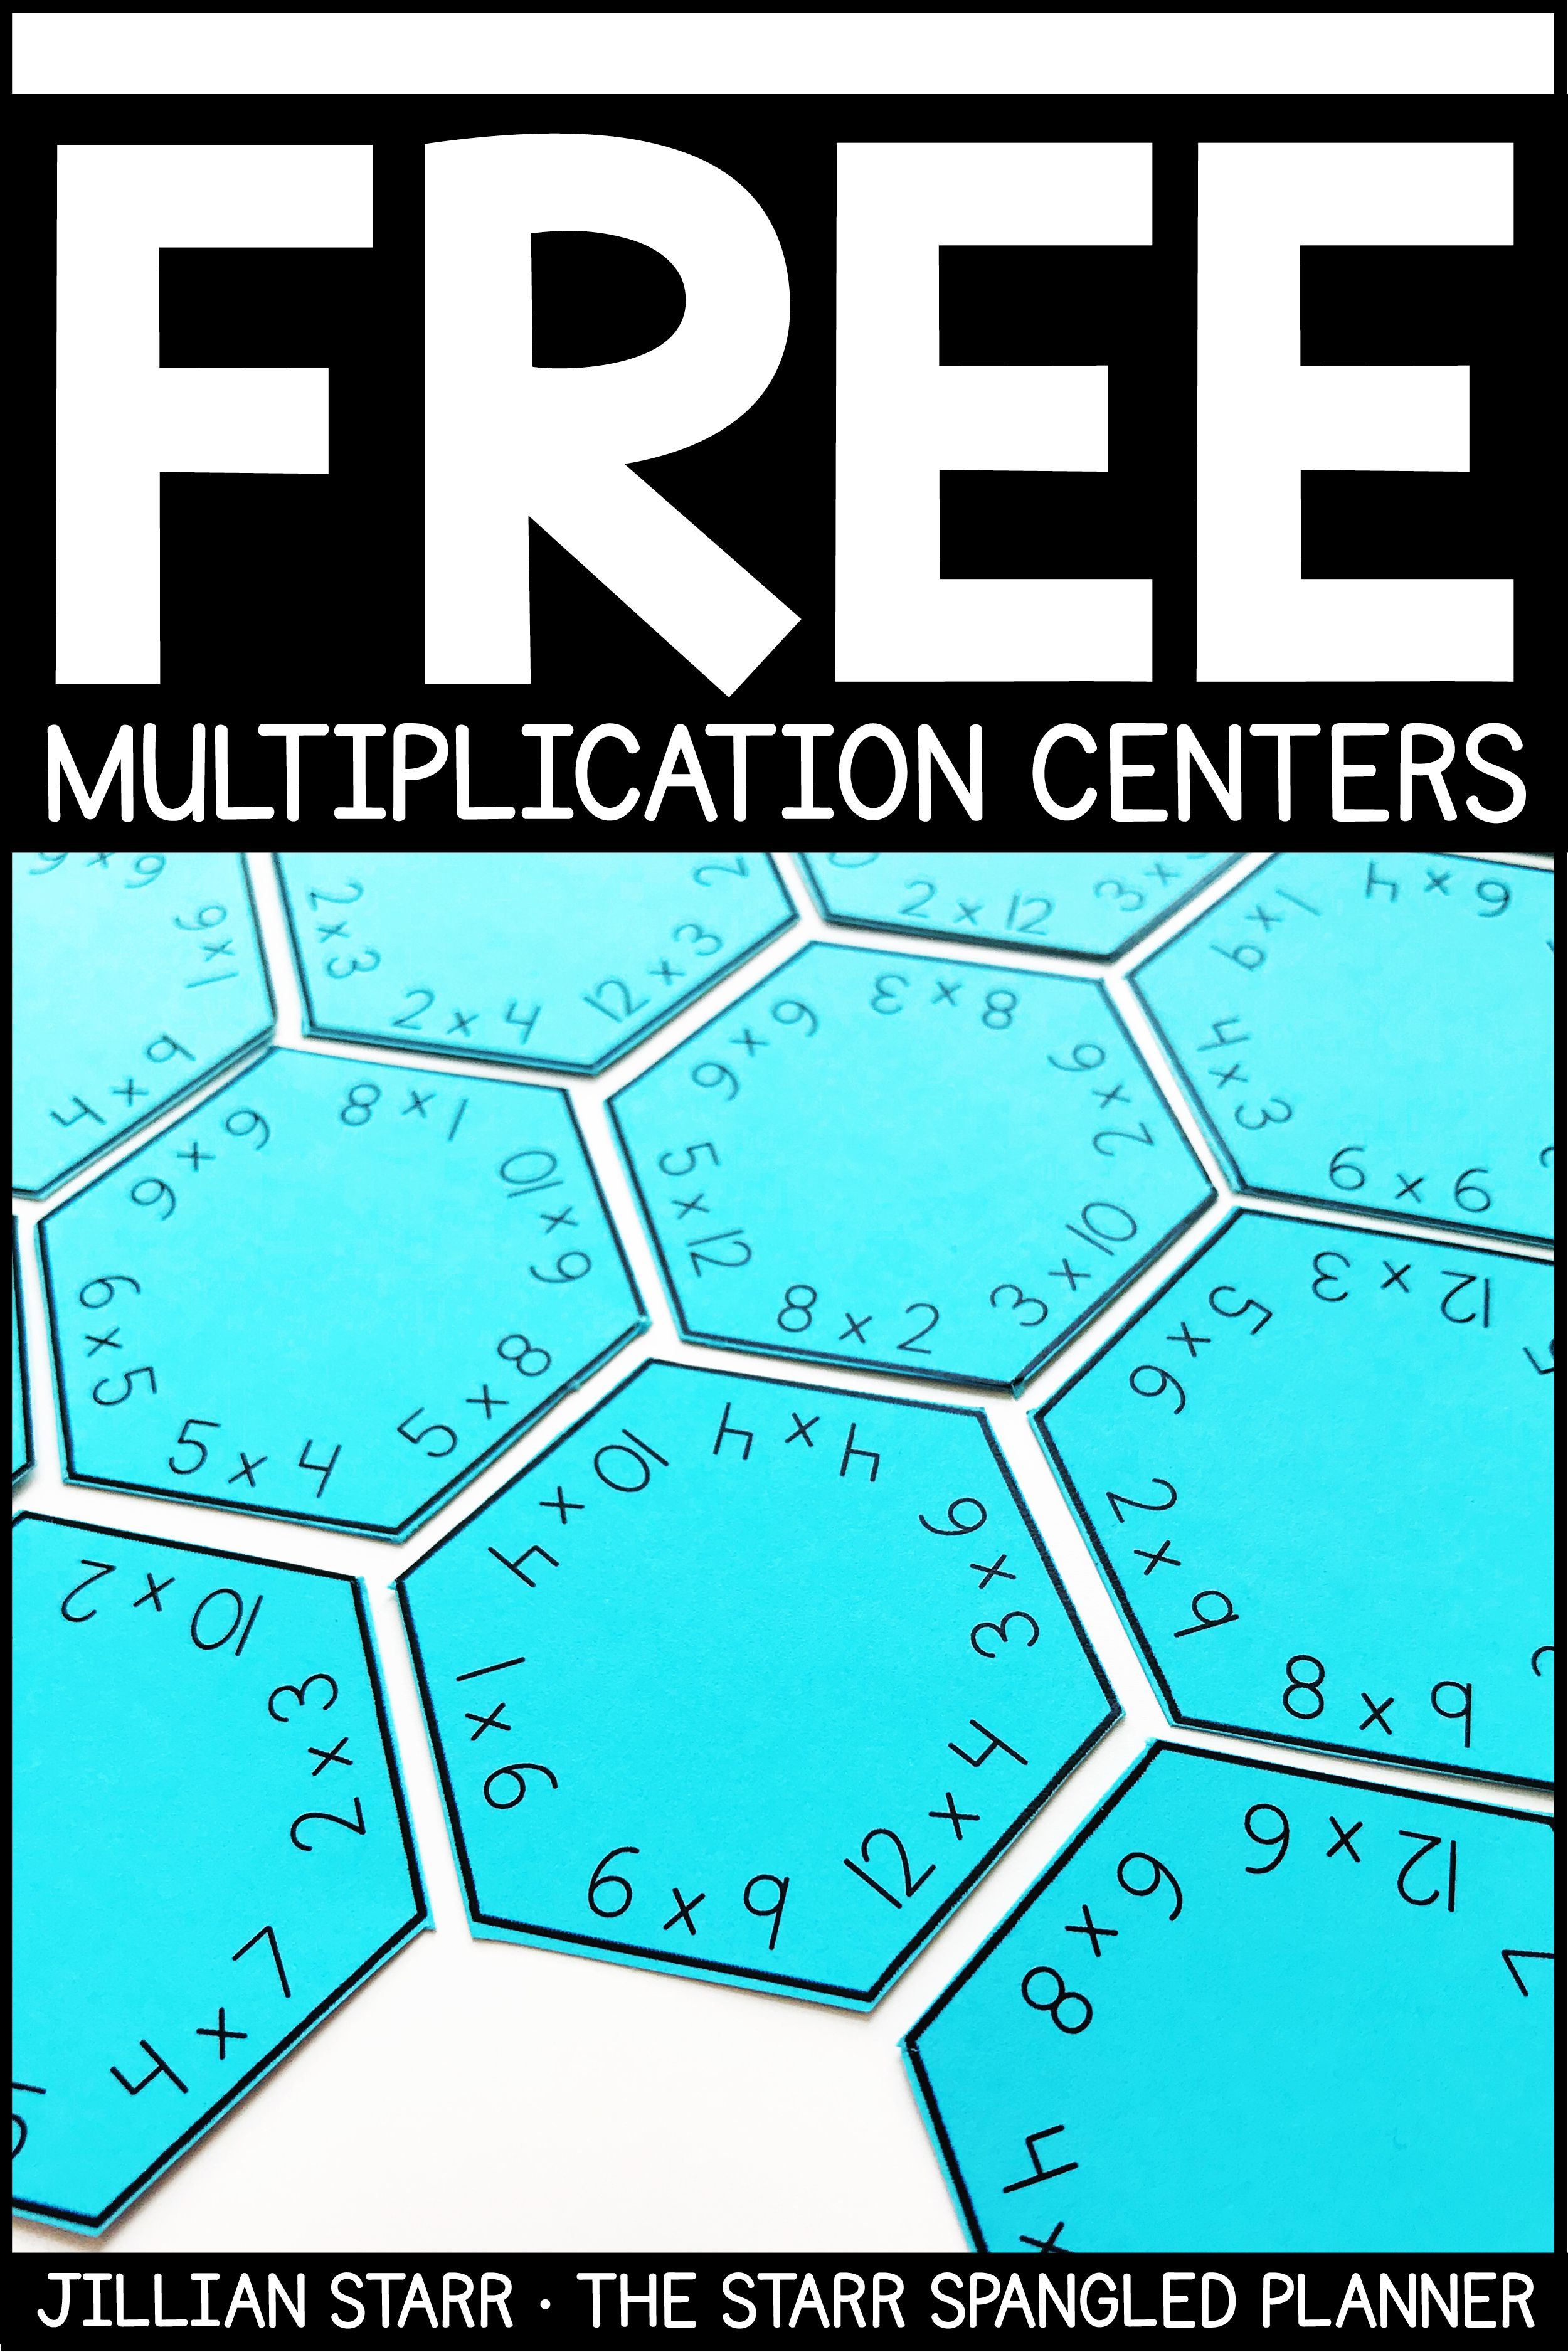 FREE MULTIPLICATION CENTERS | Logic puzzles, Multiplication facts ...